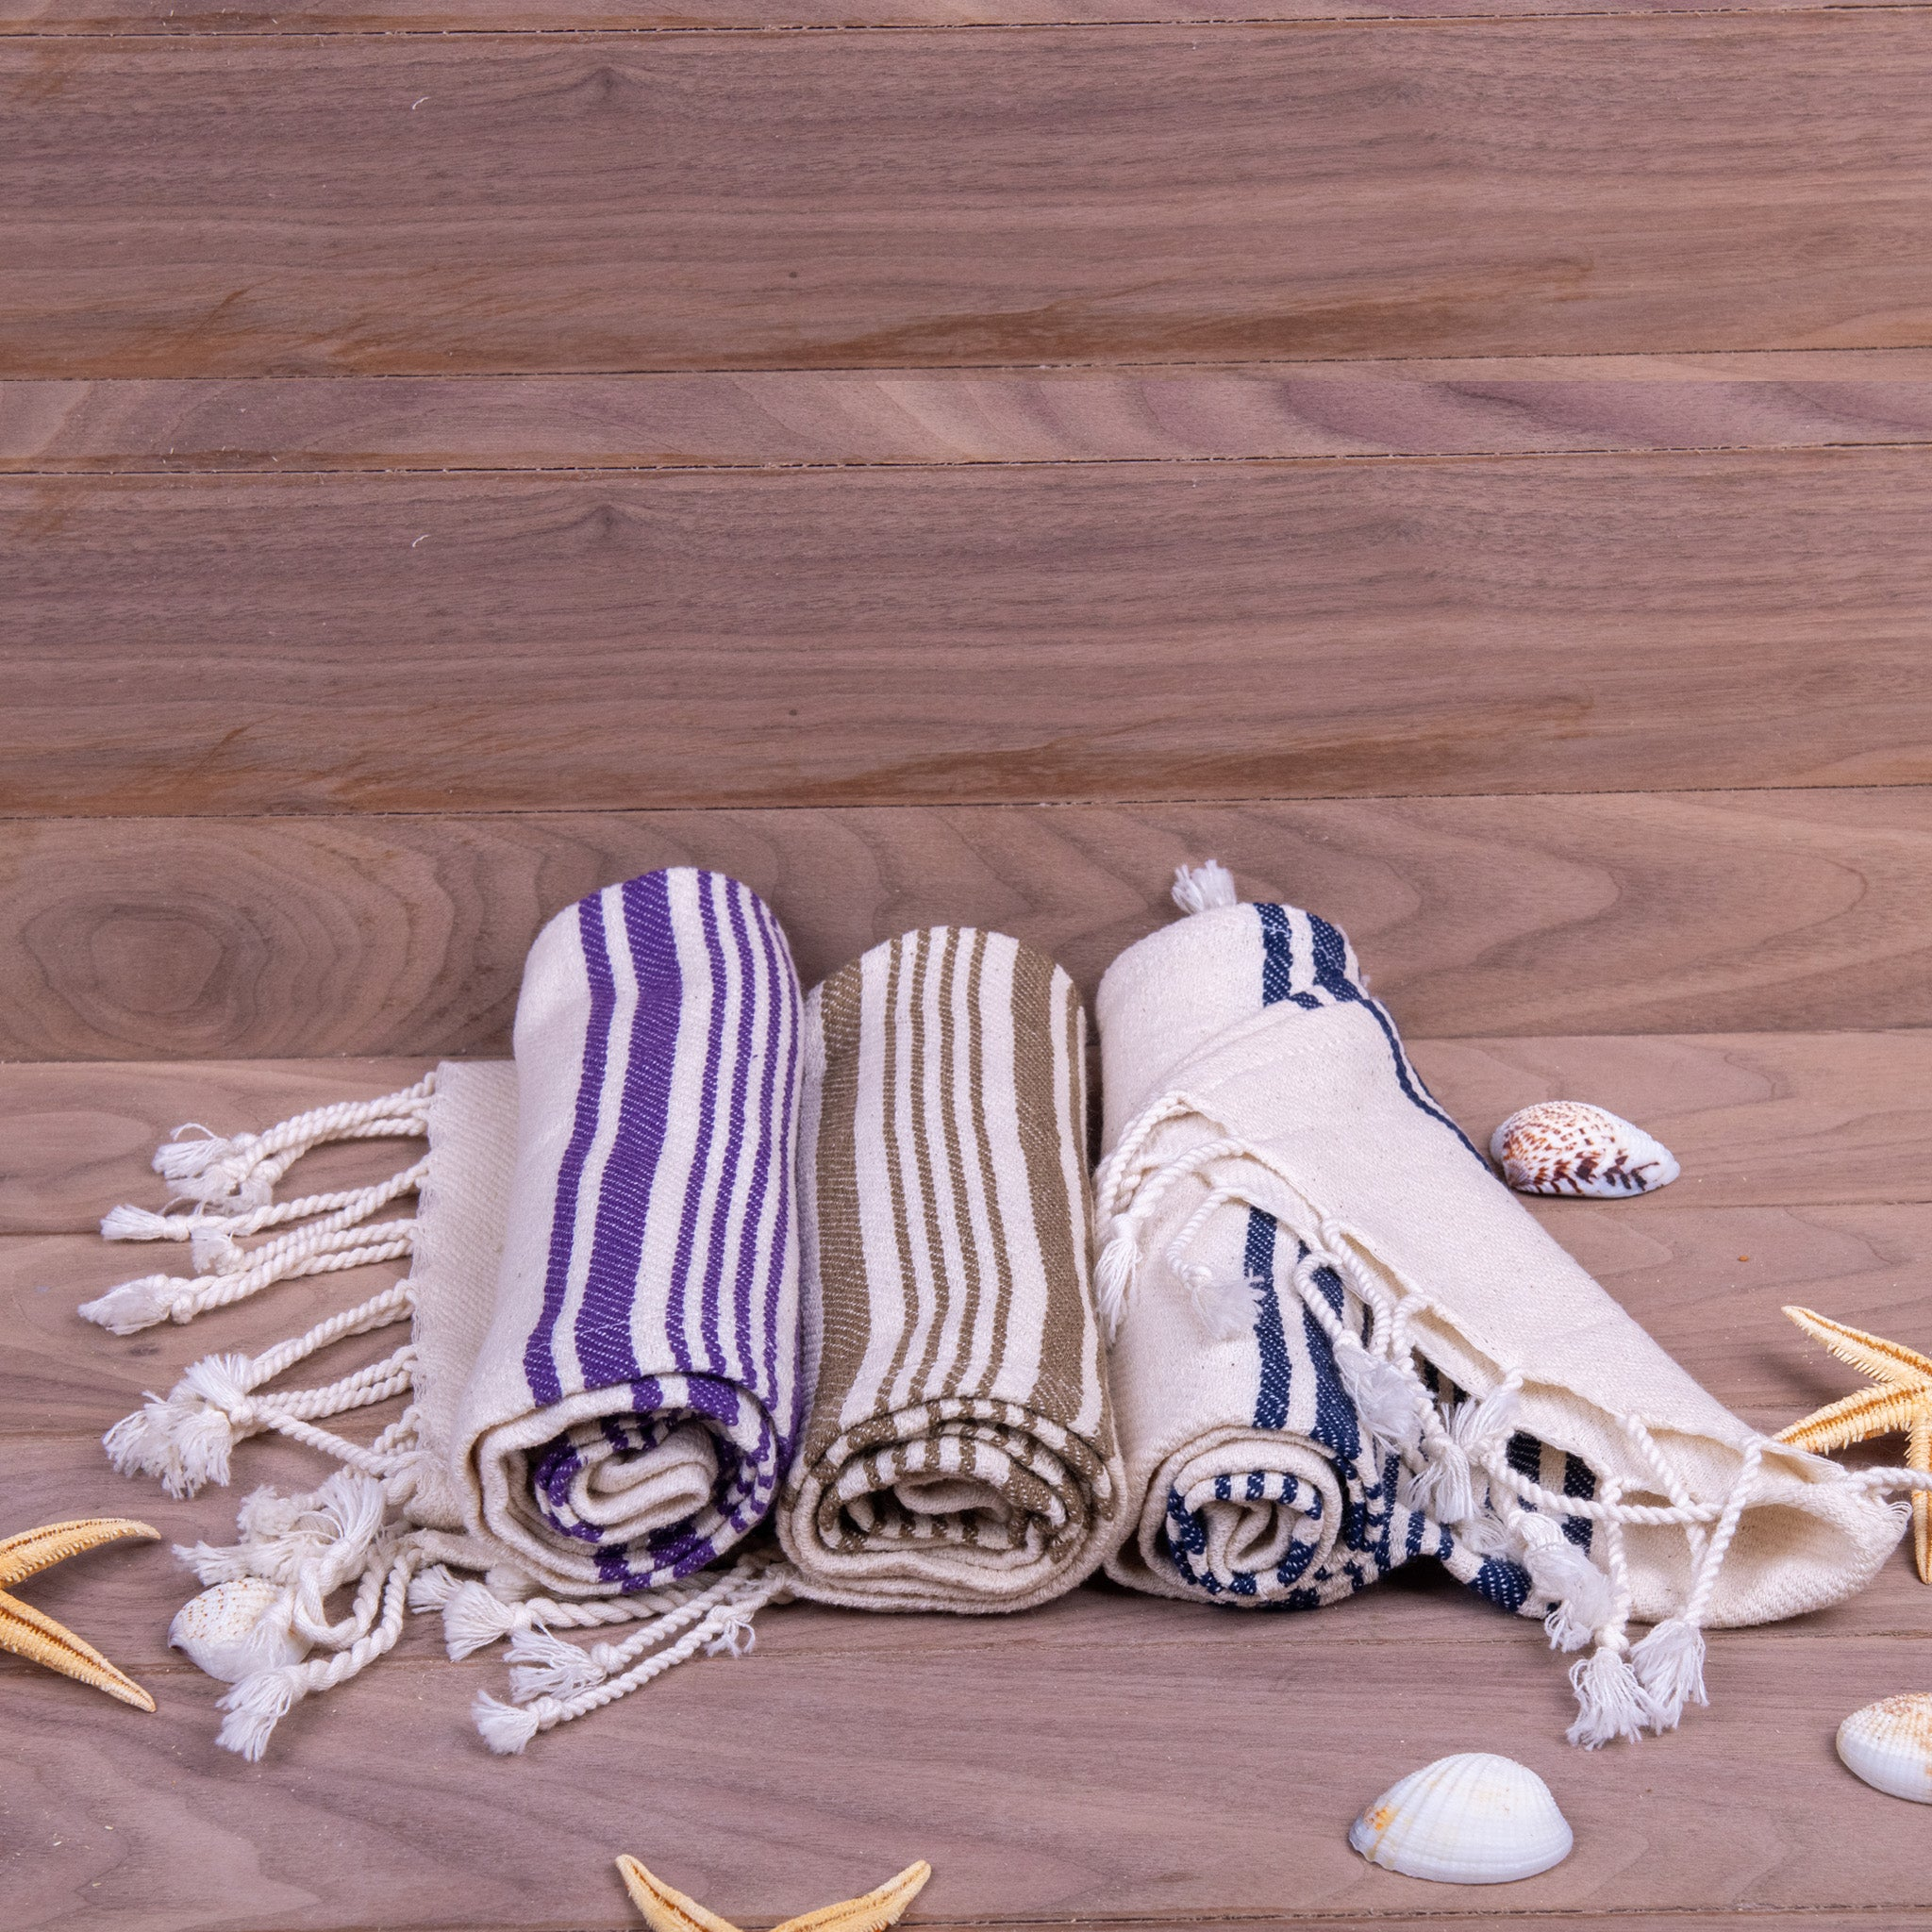 Turkish Towel, Peshkir, Hand Towel Set Of Three With Background